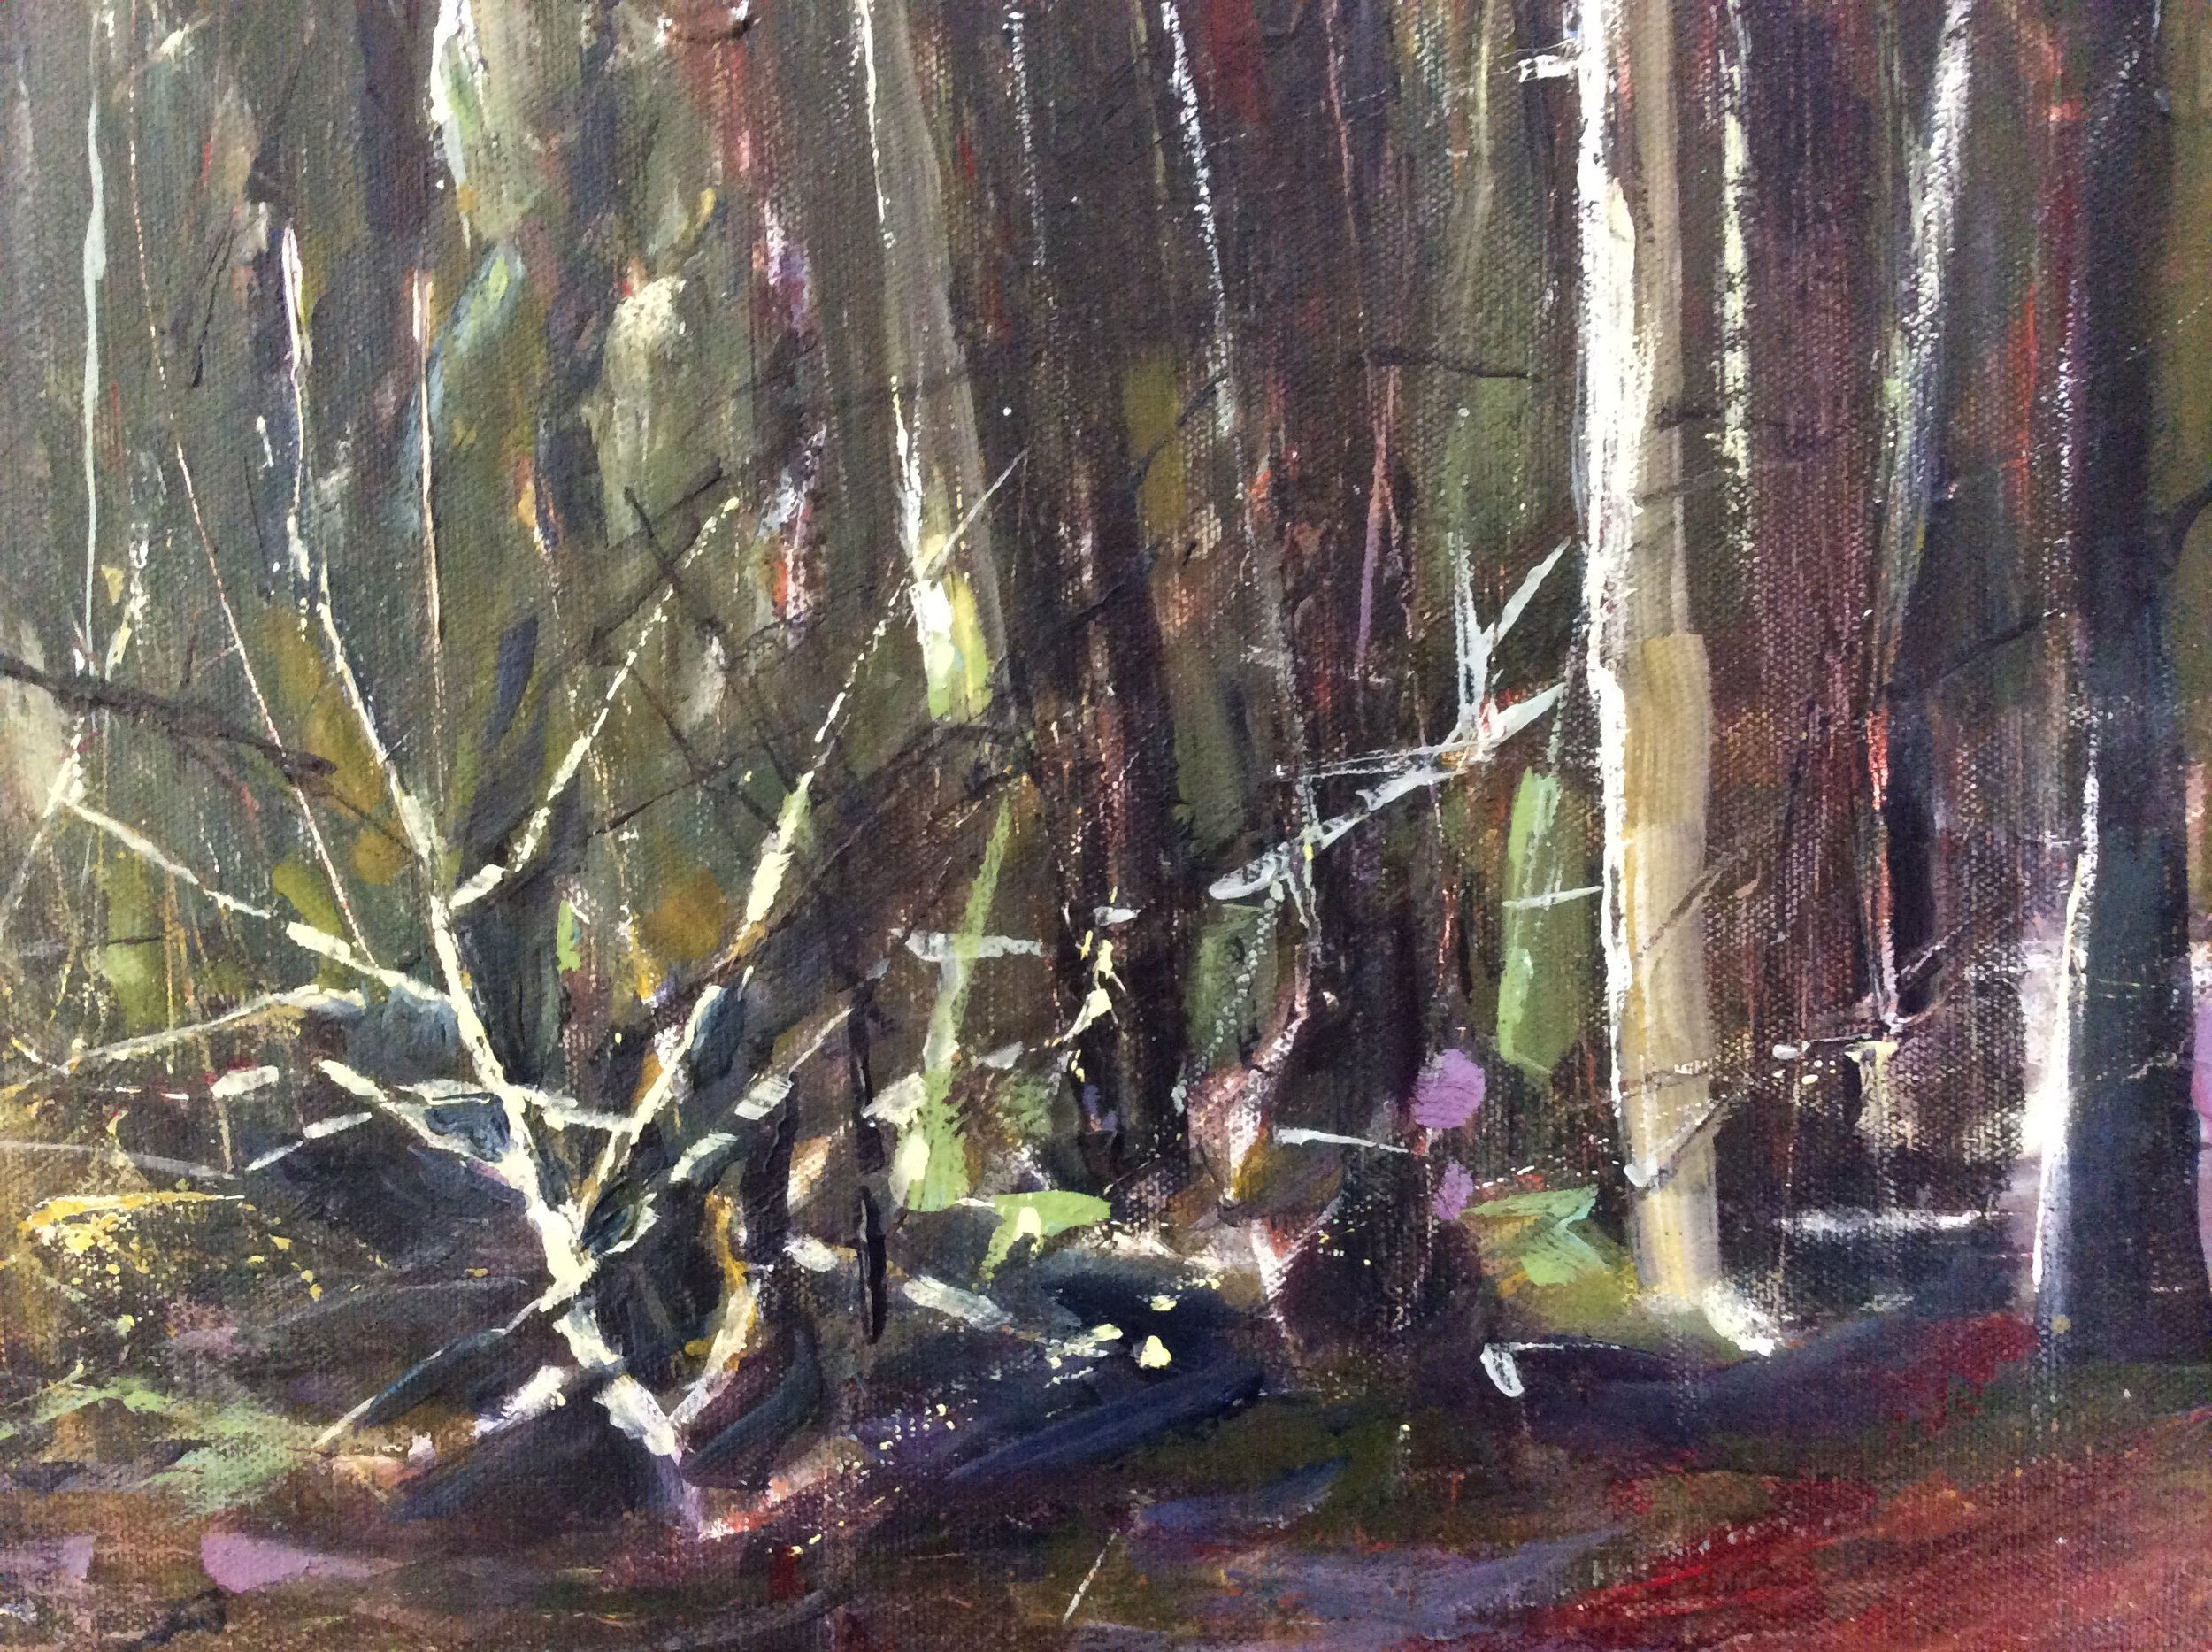 IN THE FOREST 20x30 NOT FOR SALE